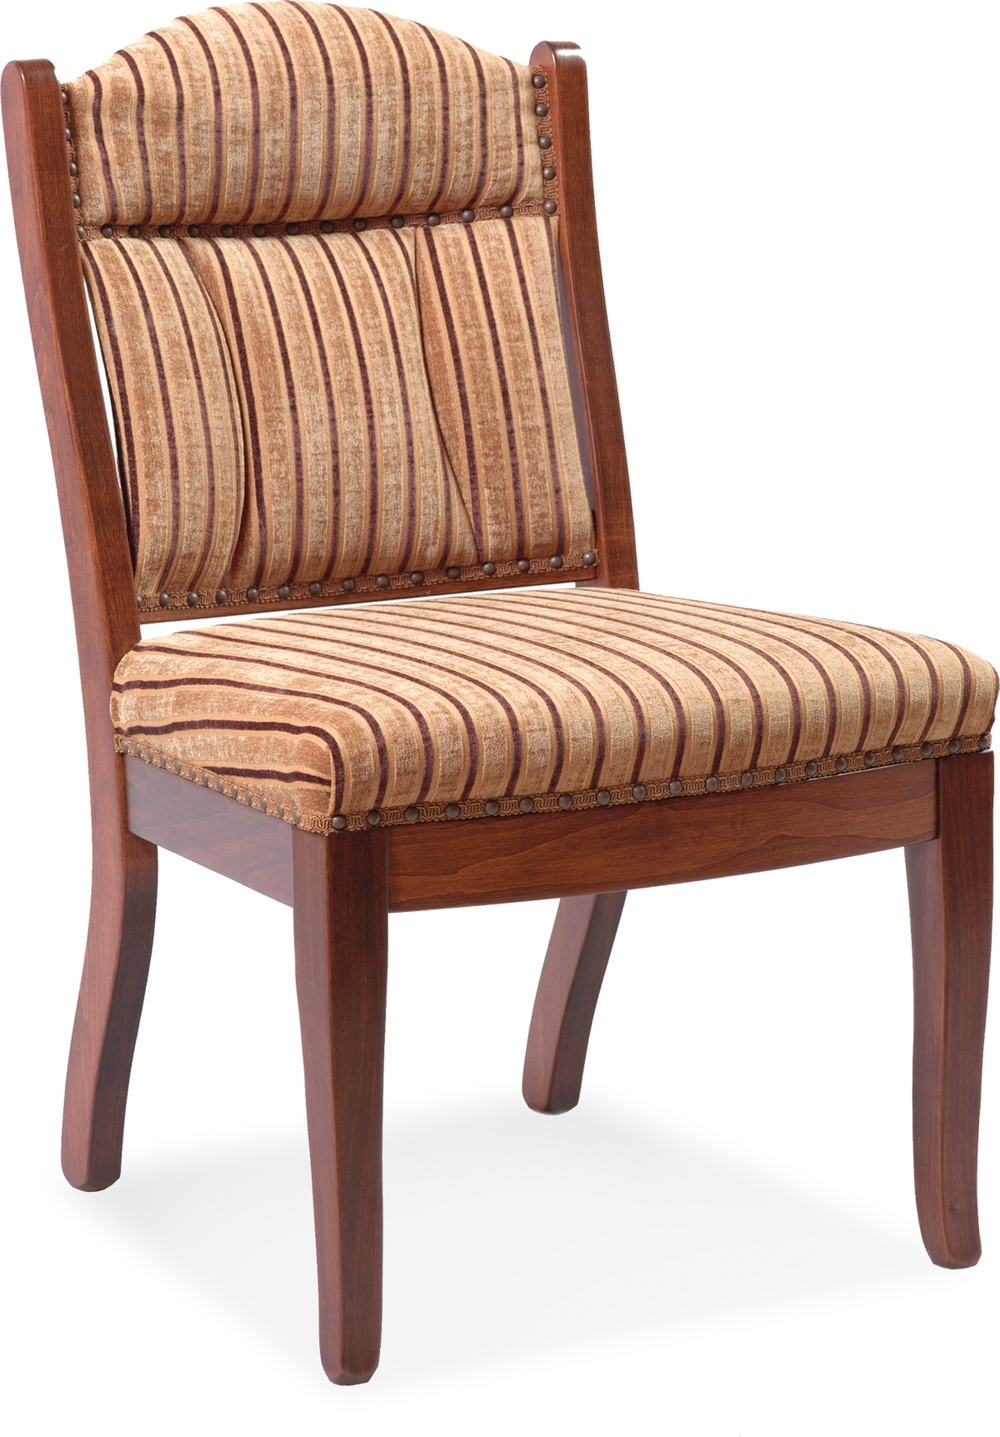 Buckeye Rockers — Kings Furniture Pertaining To Best And Newest Clint Side Chairs (View 2 of 20)